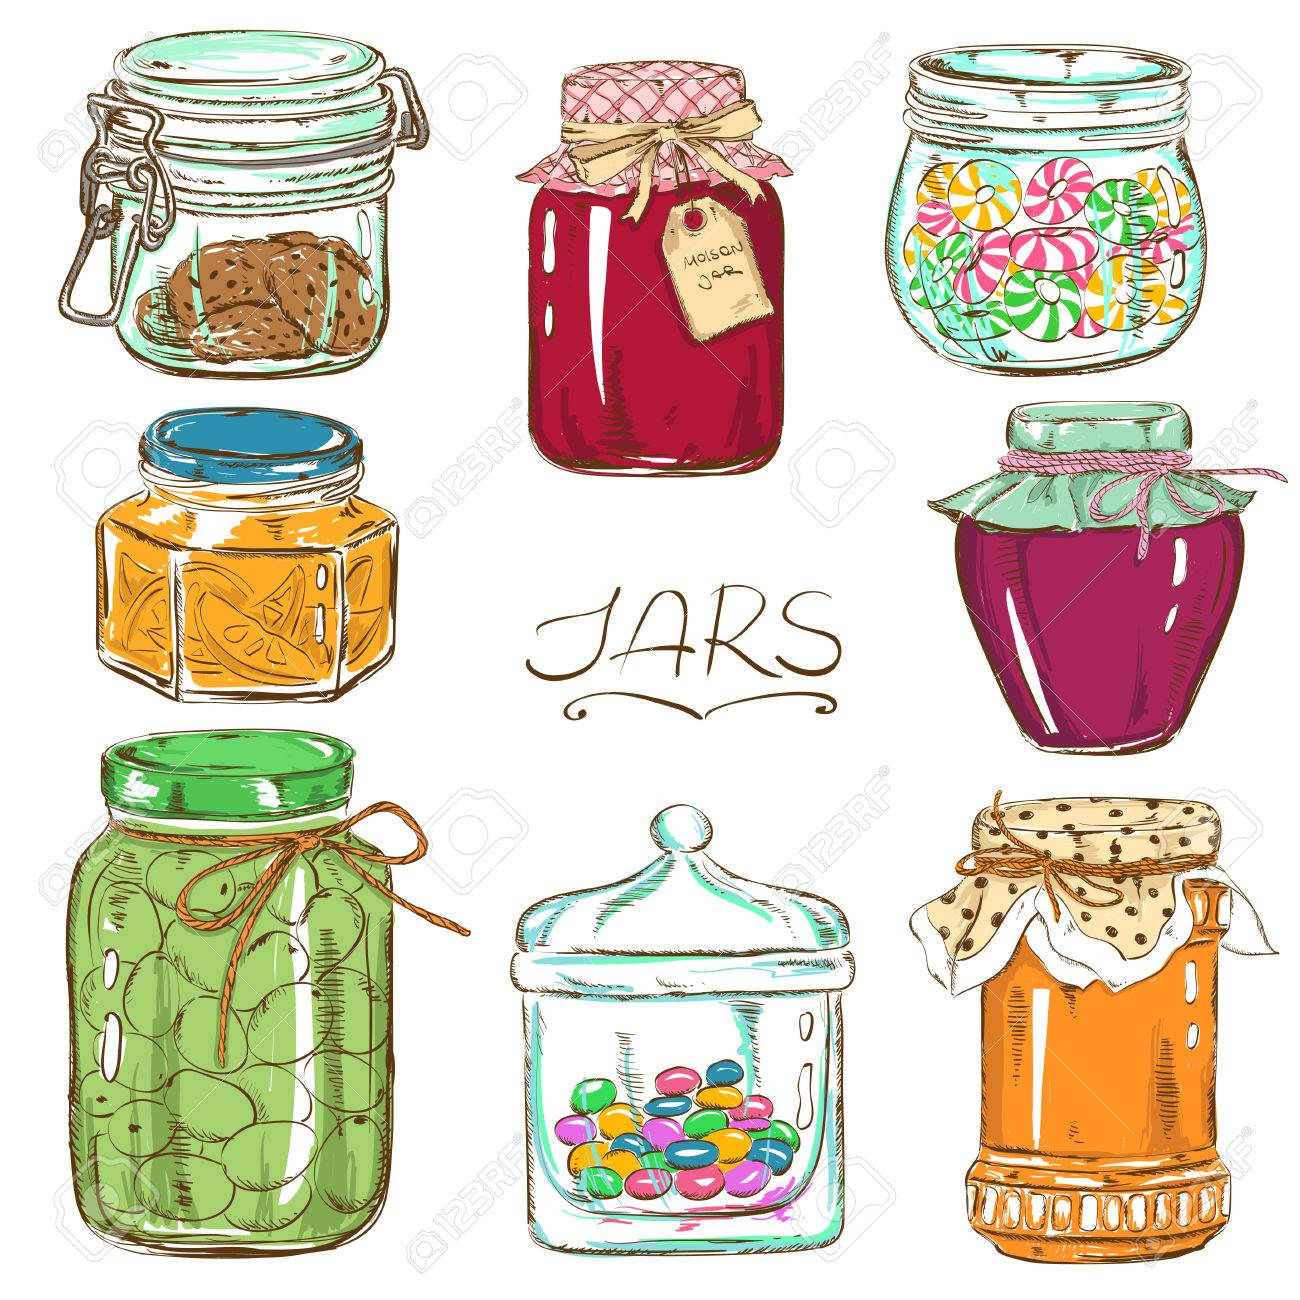 Image result for bottles and jars clipart